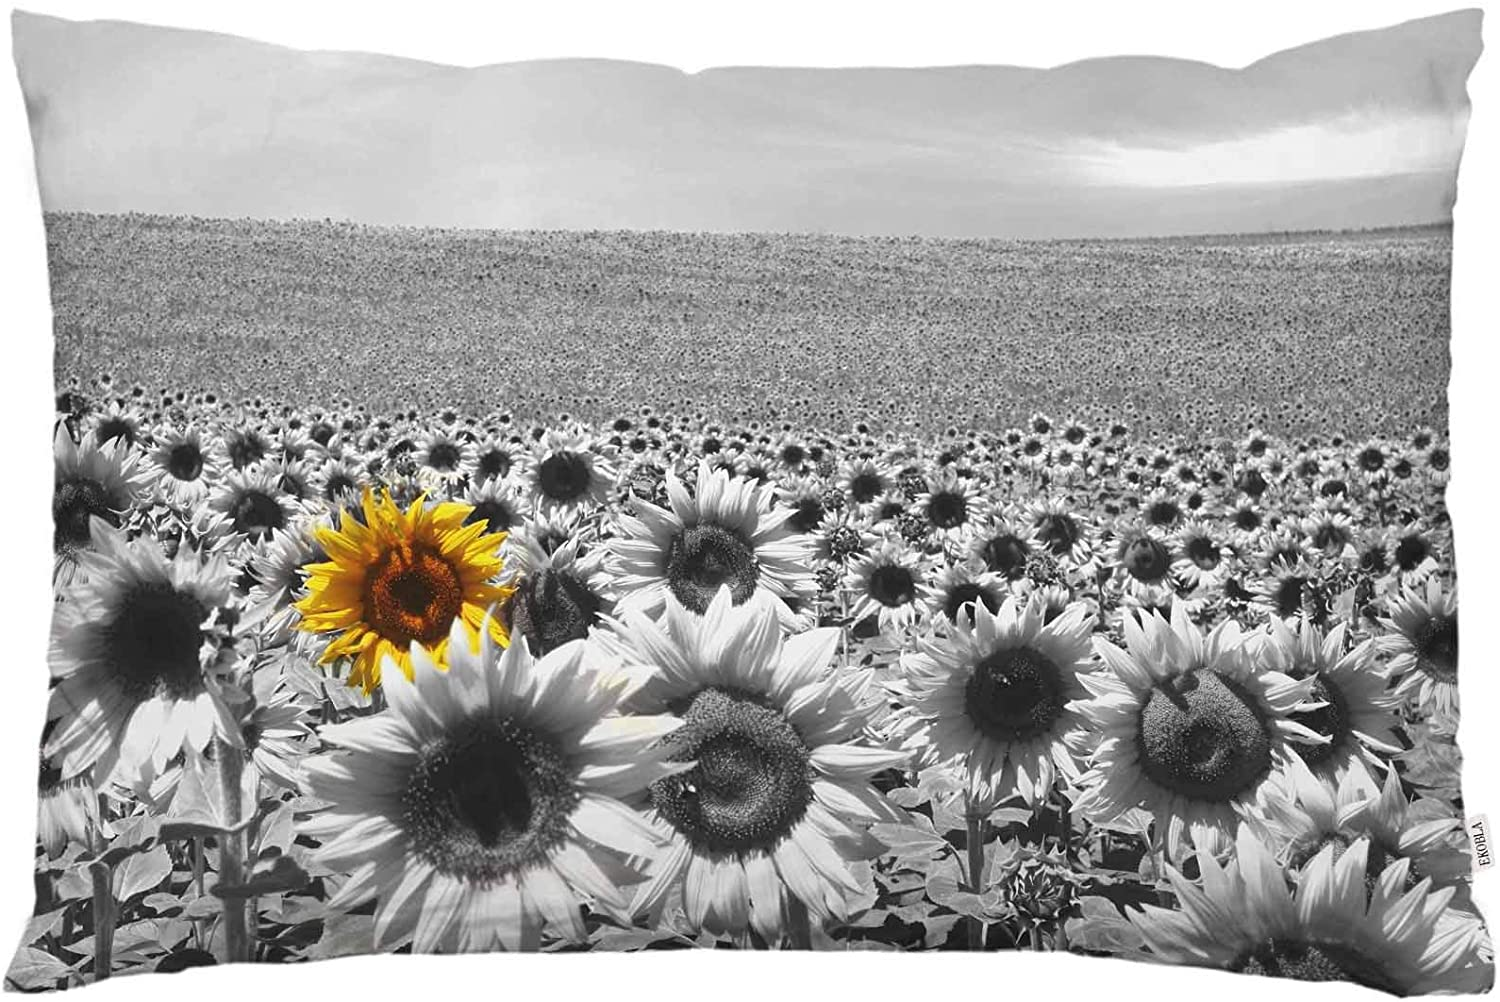 EKOBLA Throw Pillow Cover Sunflowers Vintage Floral Design Oil Painting Summer Autumn Blossom Wildflowers Plant Decor Lumbar Pillow Case Cushion for Sofa Couch Bed Standard Queen Size 20x30 Inch